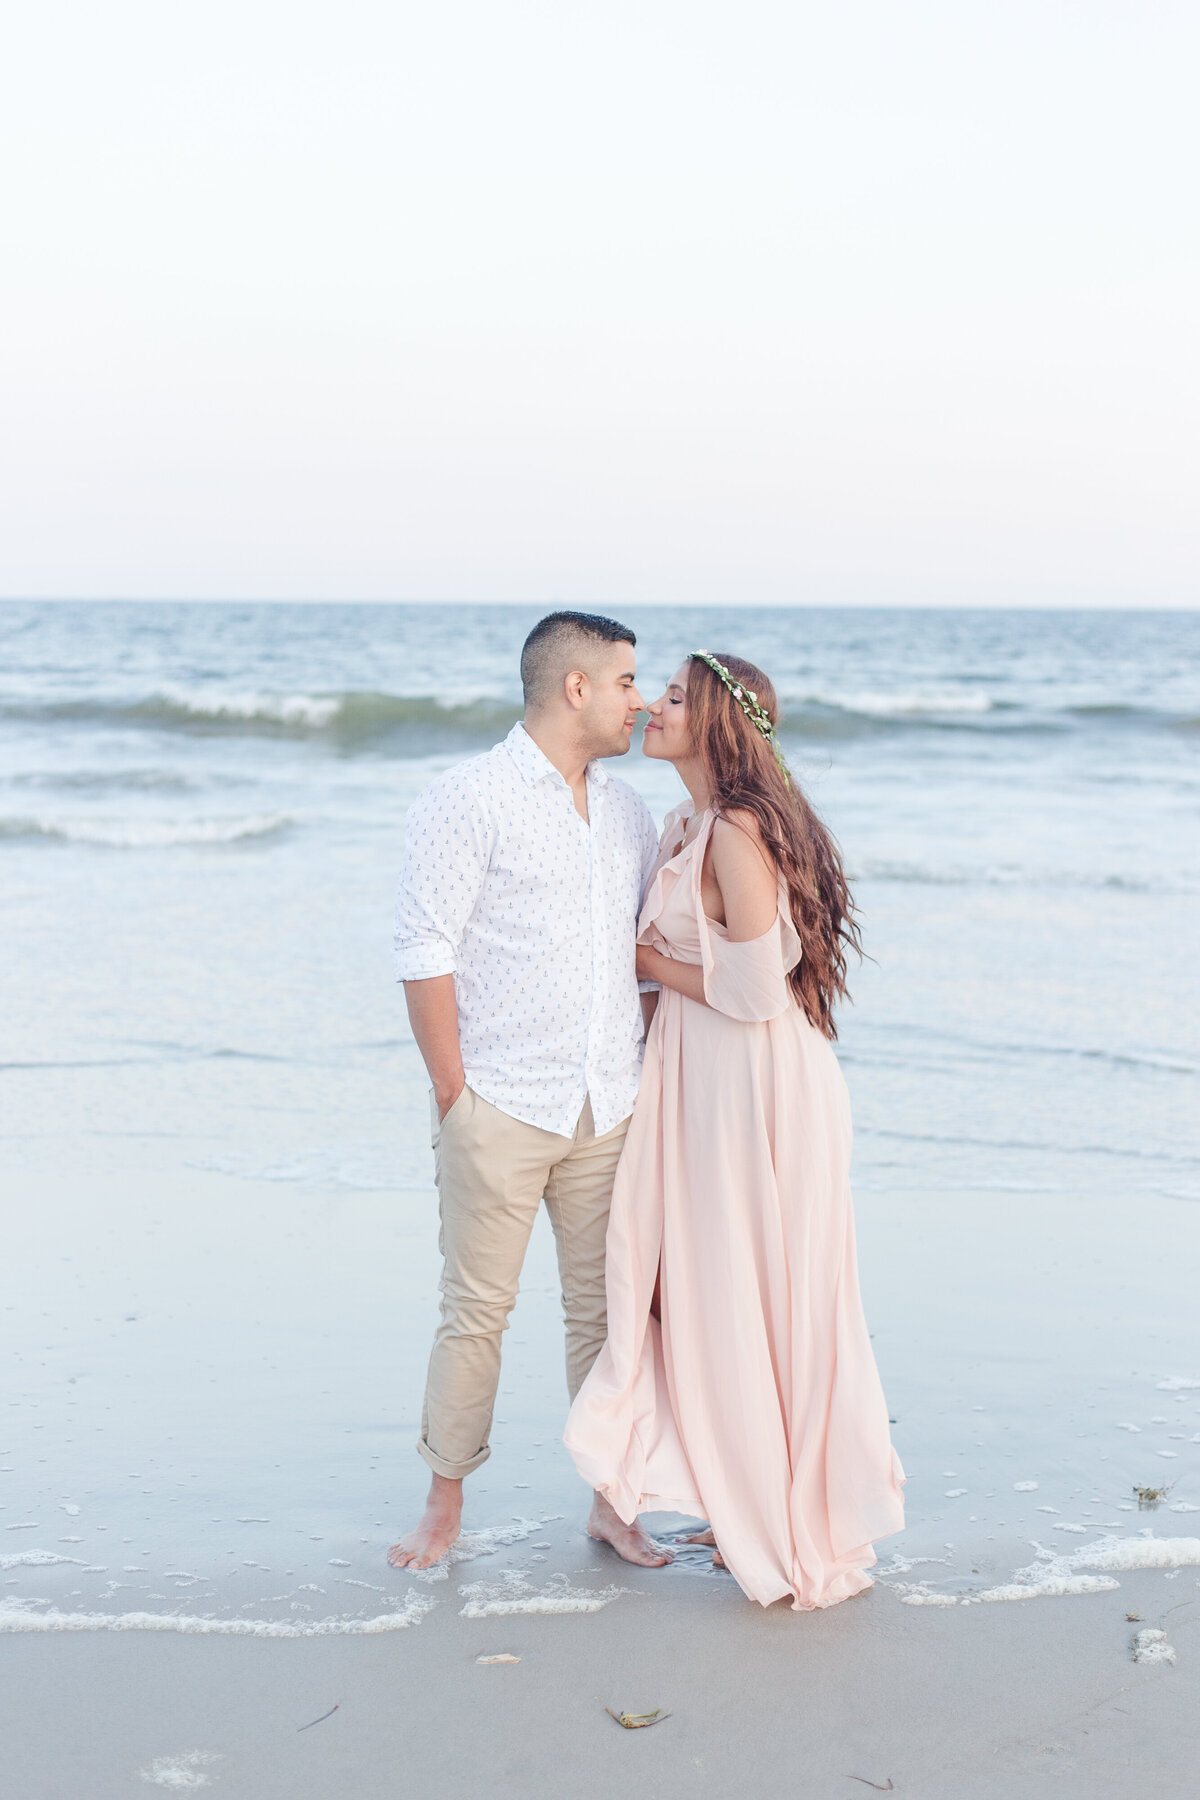 Scar-Vita-2019-Copyright-Rockaway-Beach-Engagement-Session-17